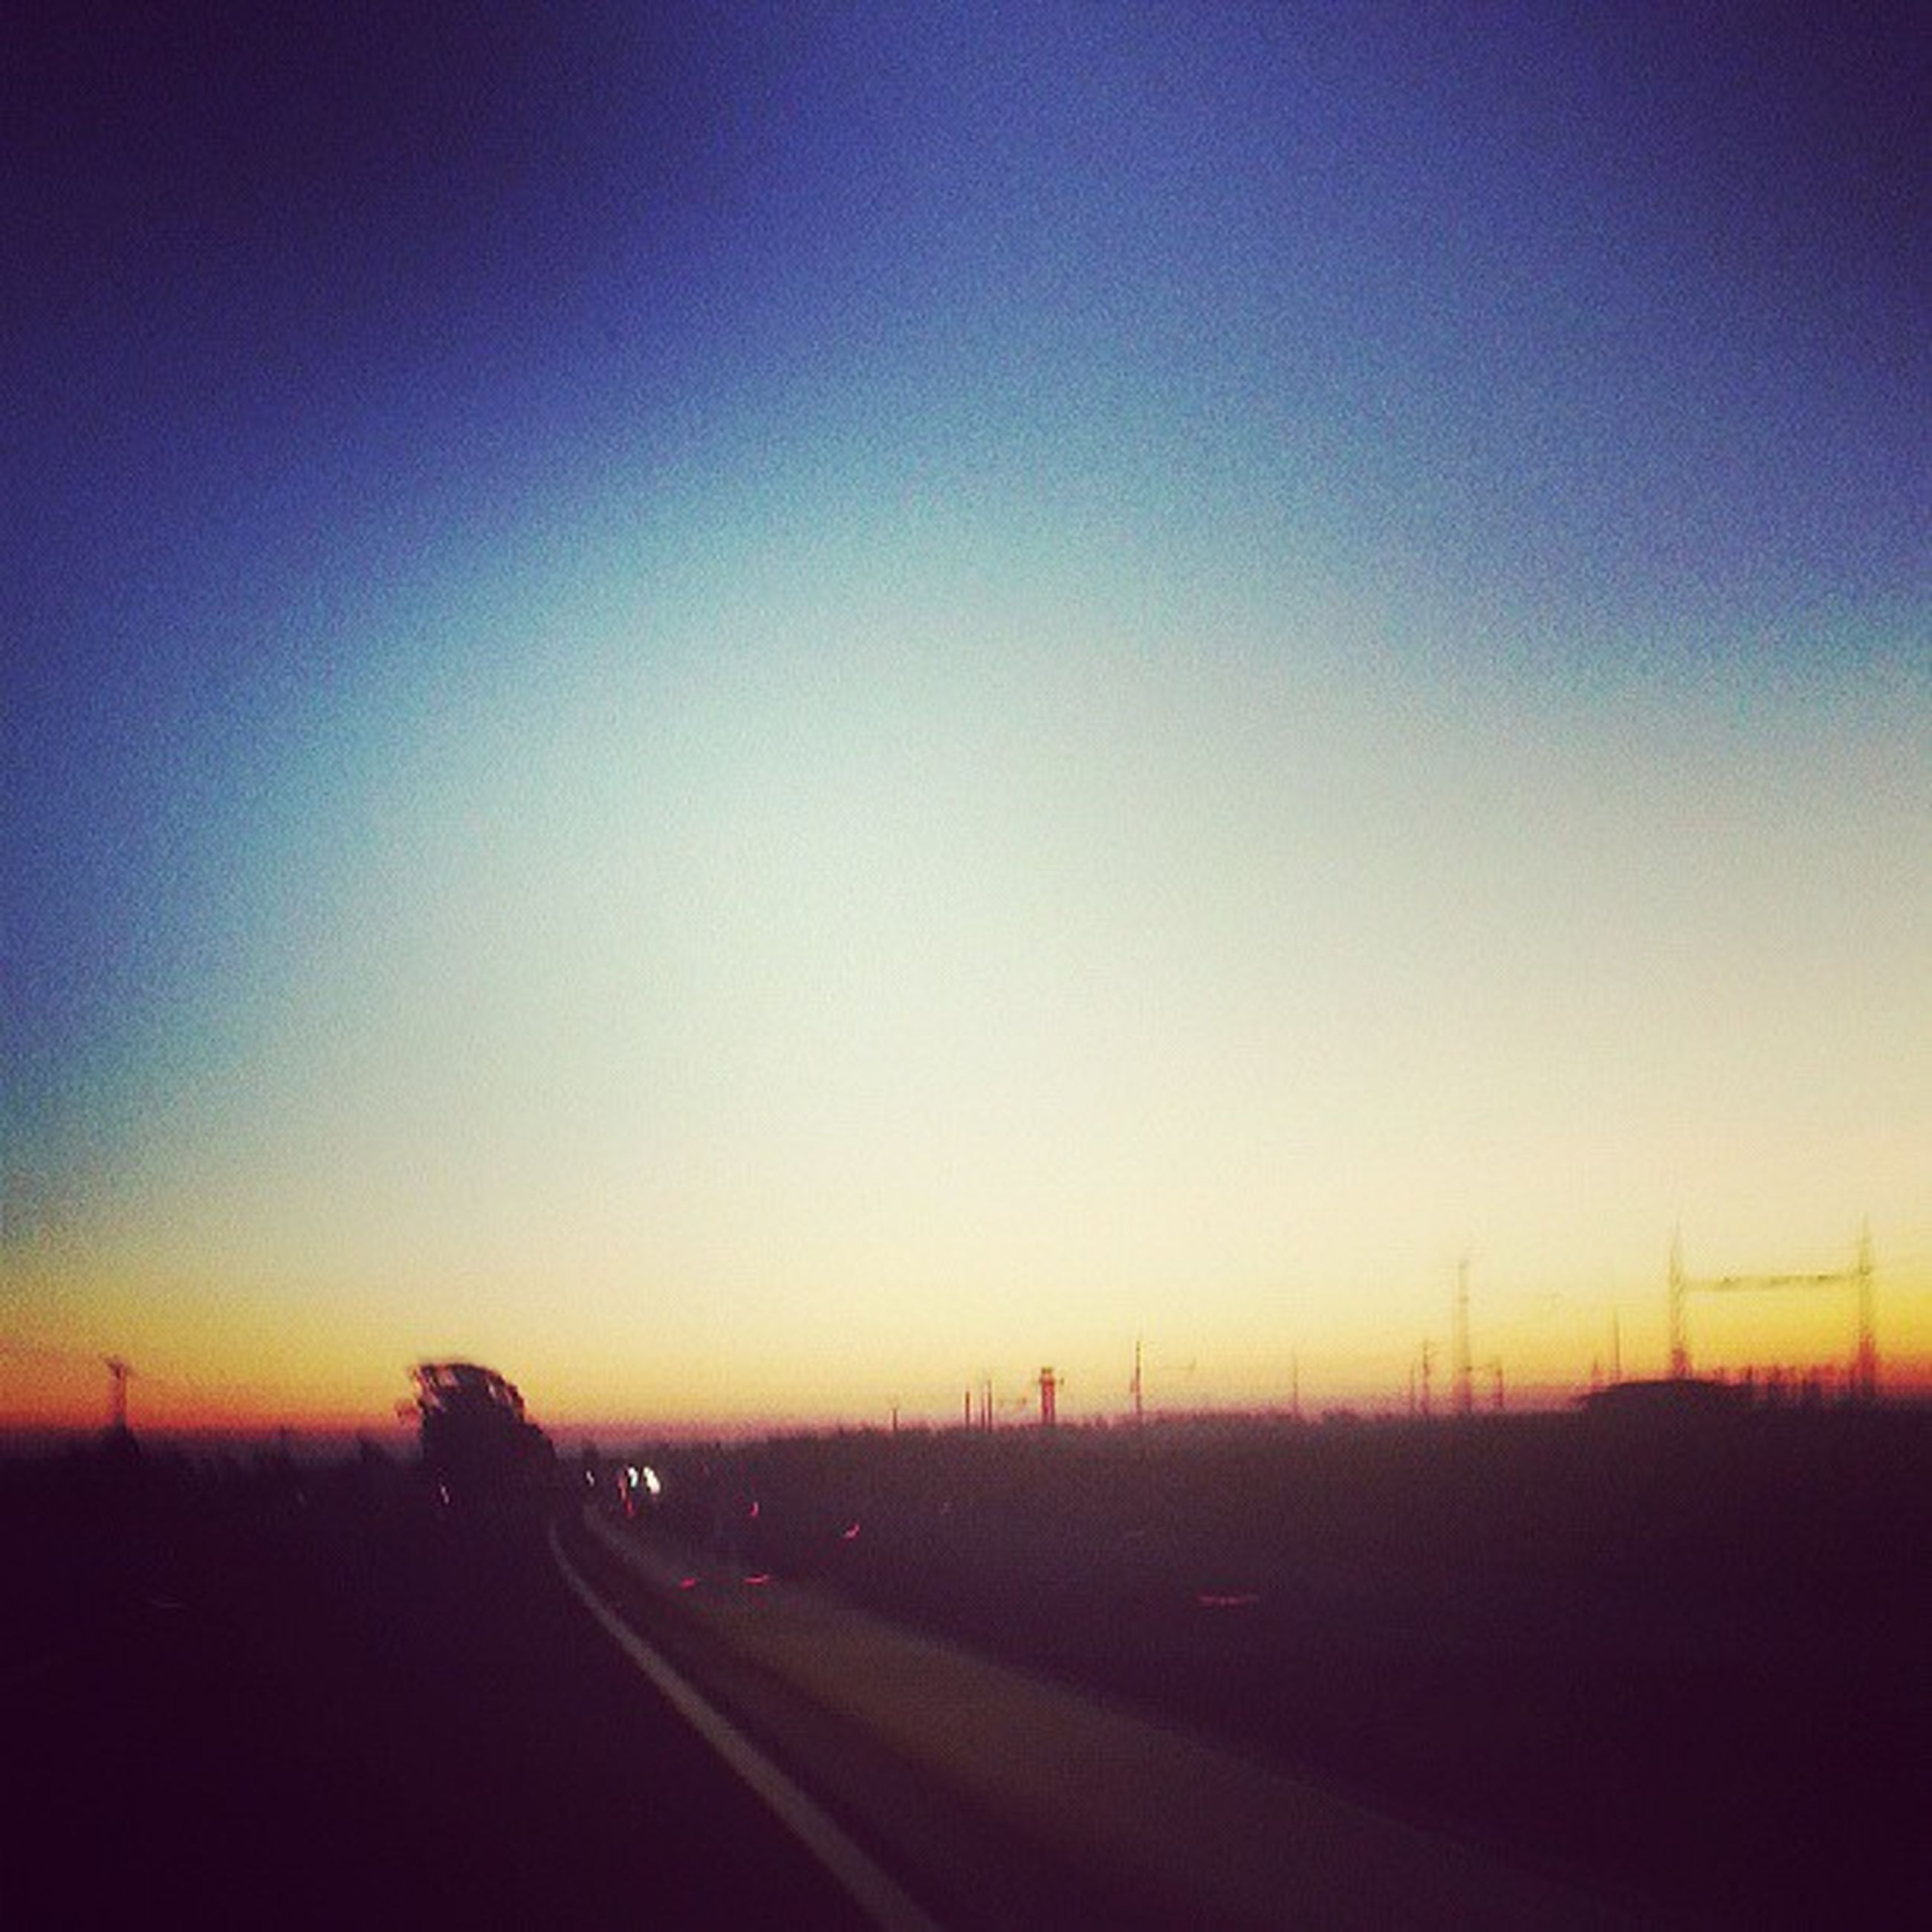 copy space, clear sky, sunset, landscape, tranquil scene, tranquility, road, silhouette, scenics, transportation, field, beauty in nature, nature, dusk, horizon over land, the way forward, blue, outdoors, no people, sky